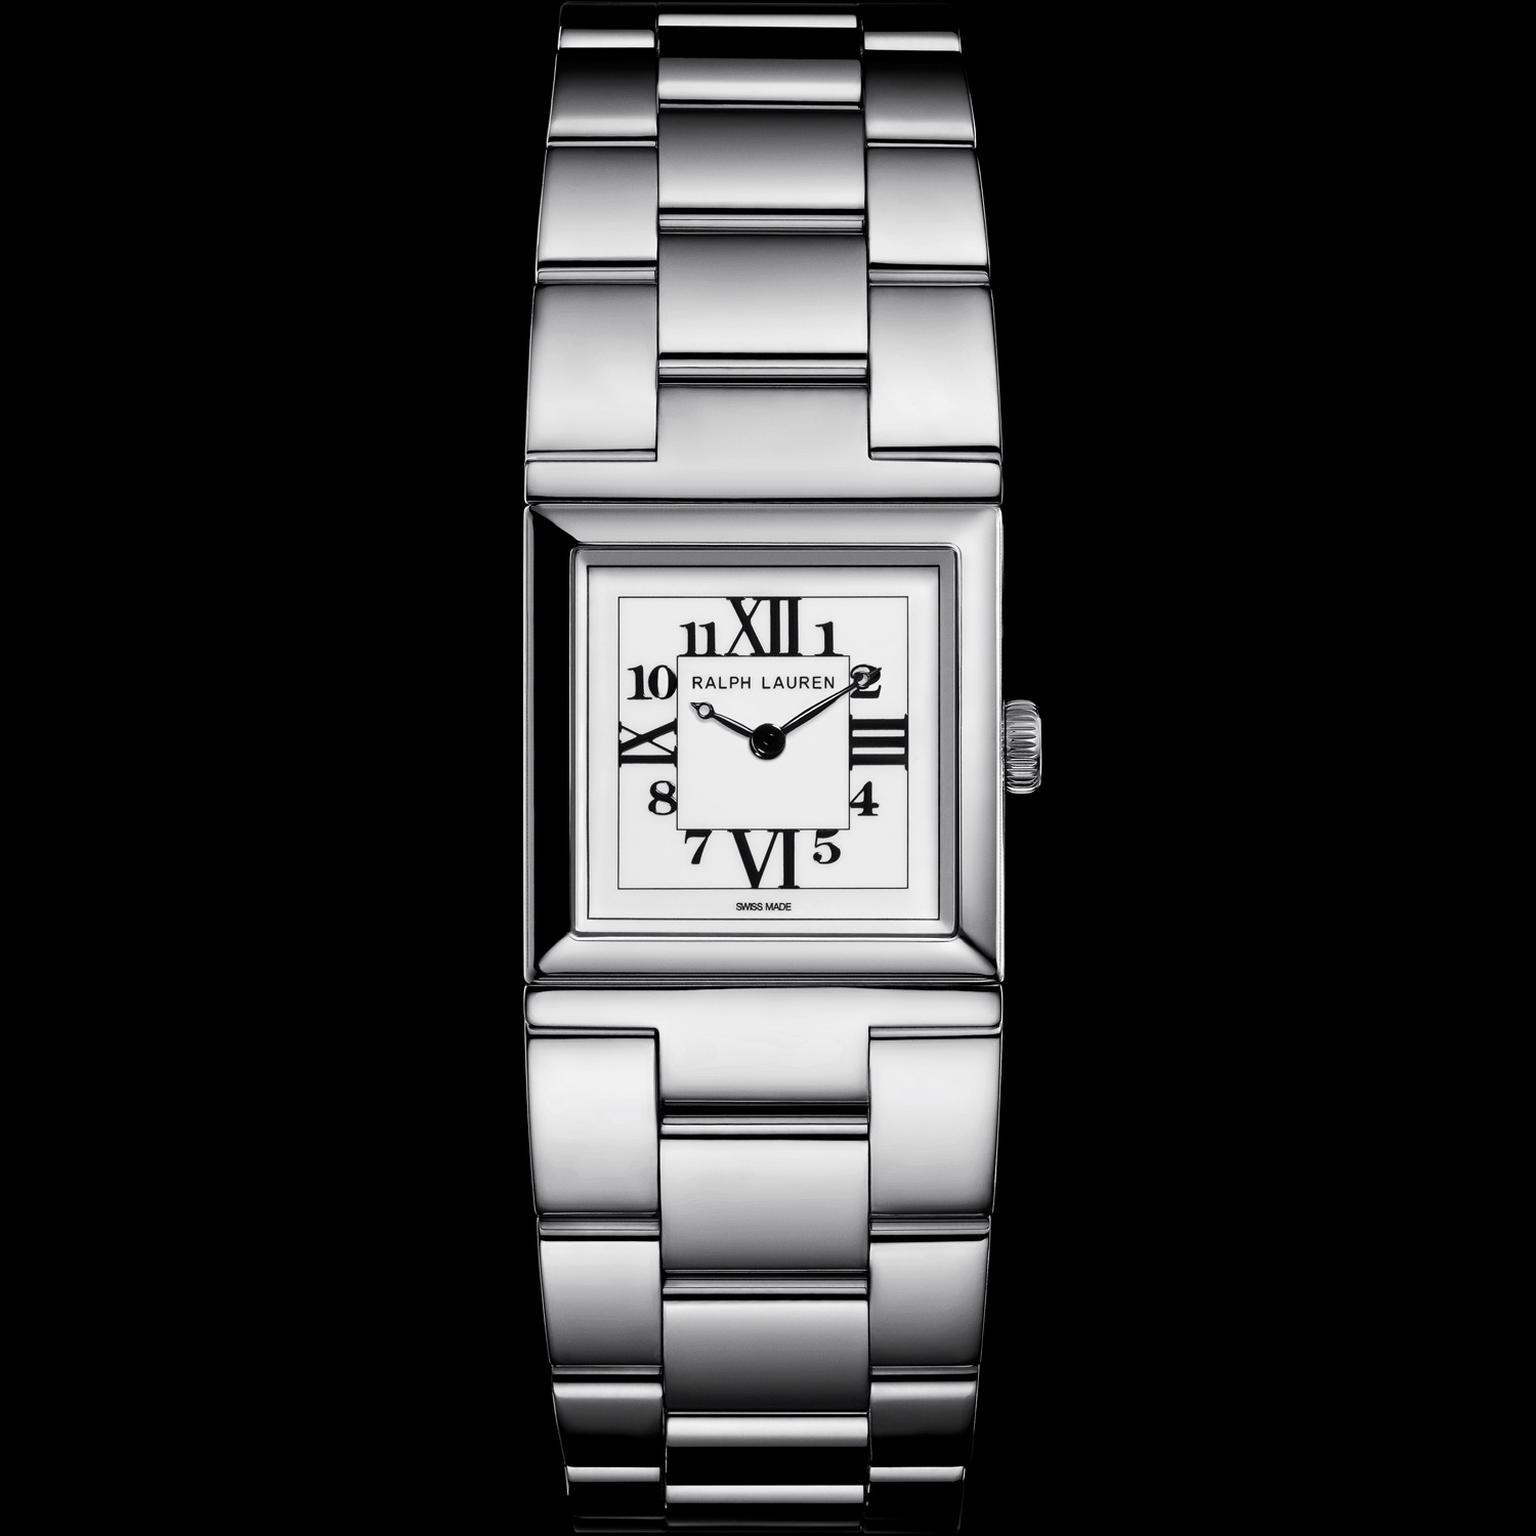 Ralph Lauren 867 Petite watch in steel